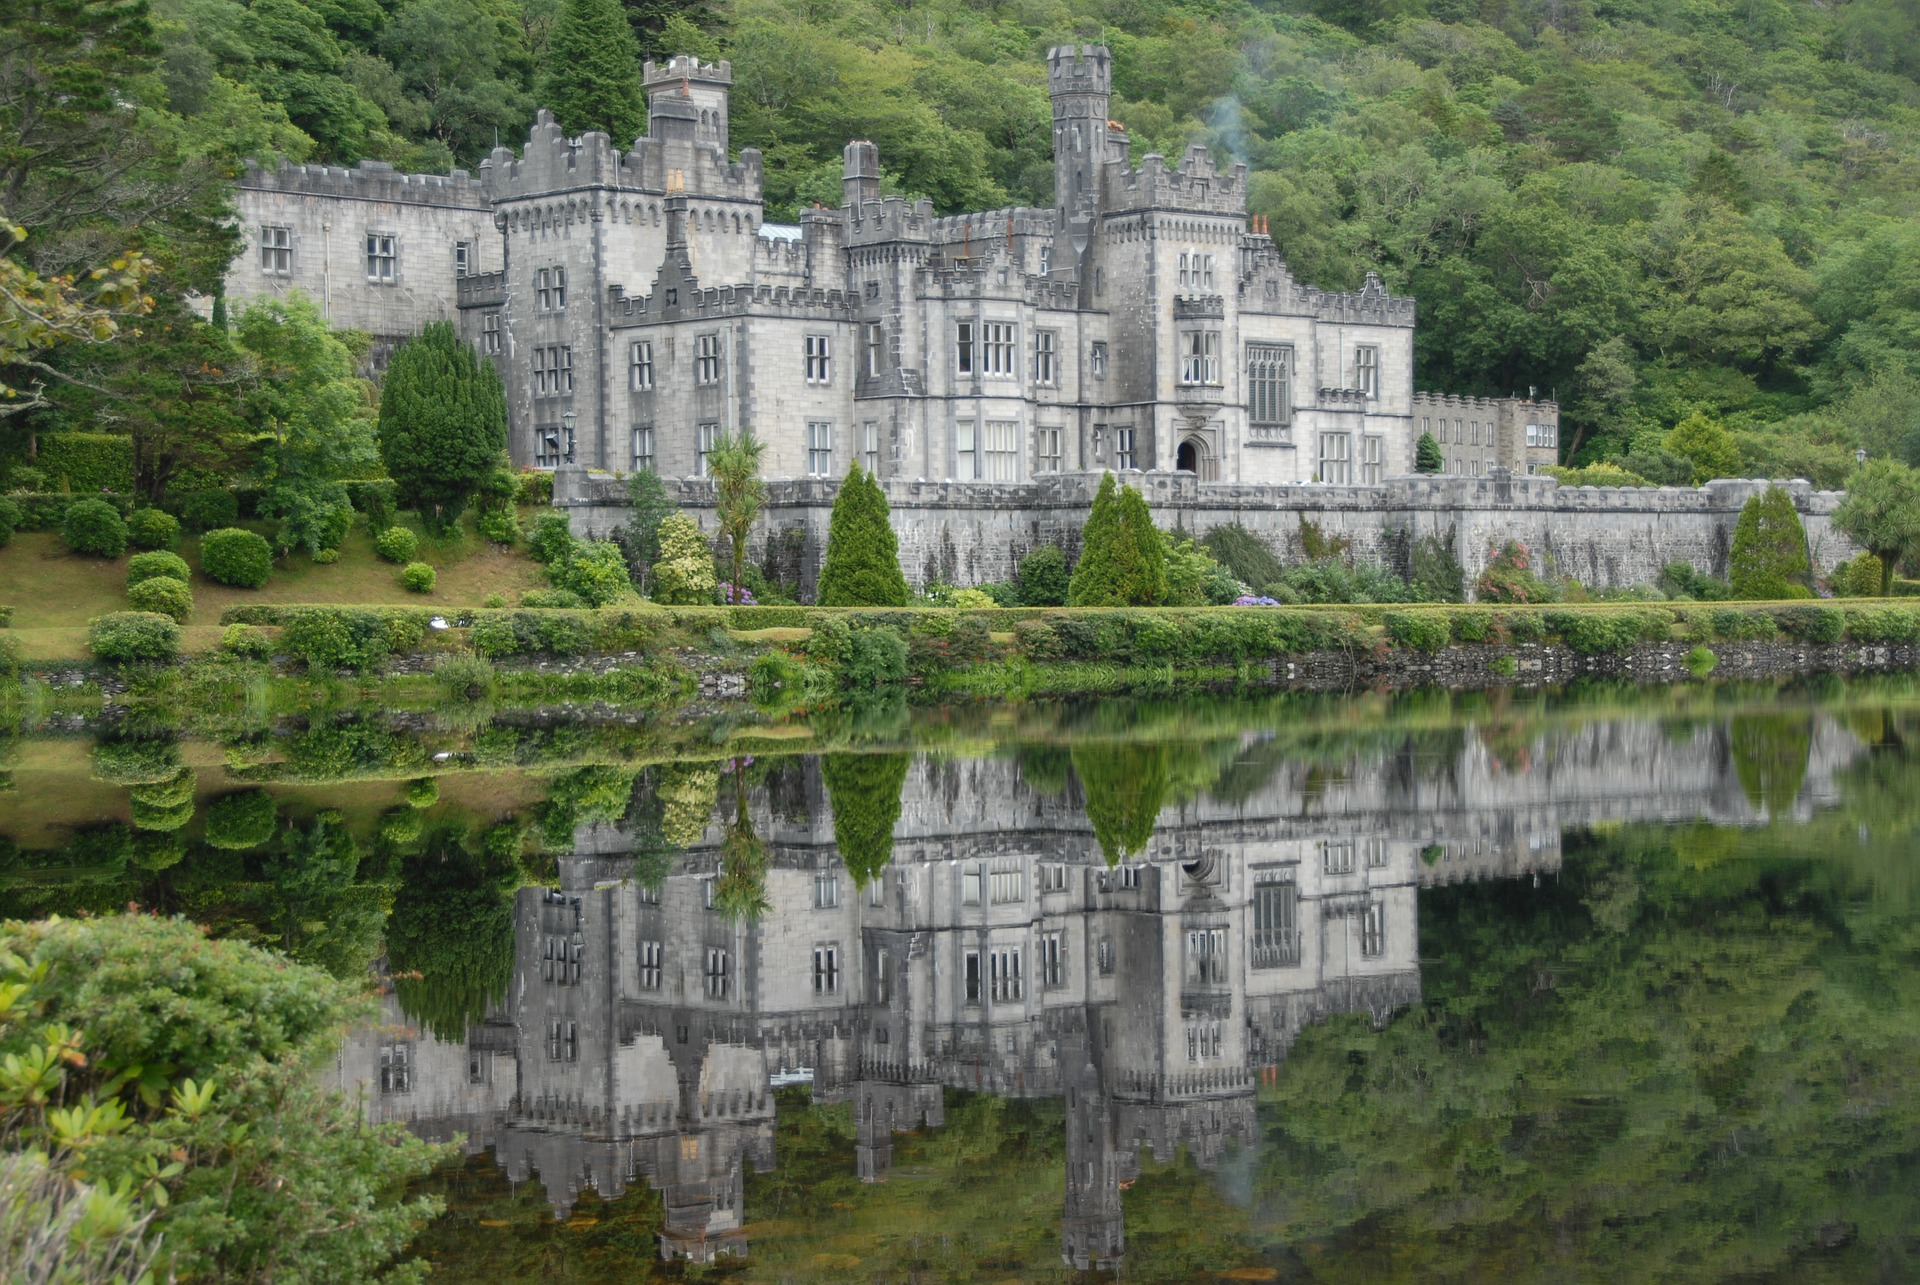 Image of Kylemore Abbey